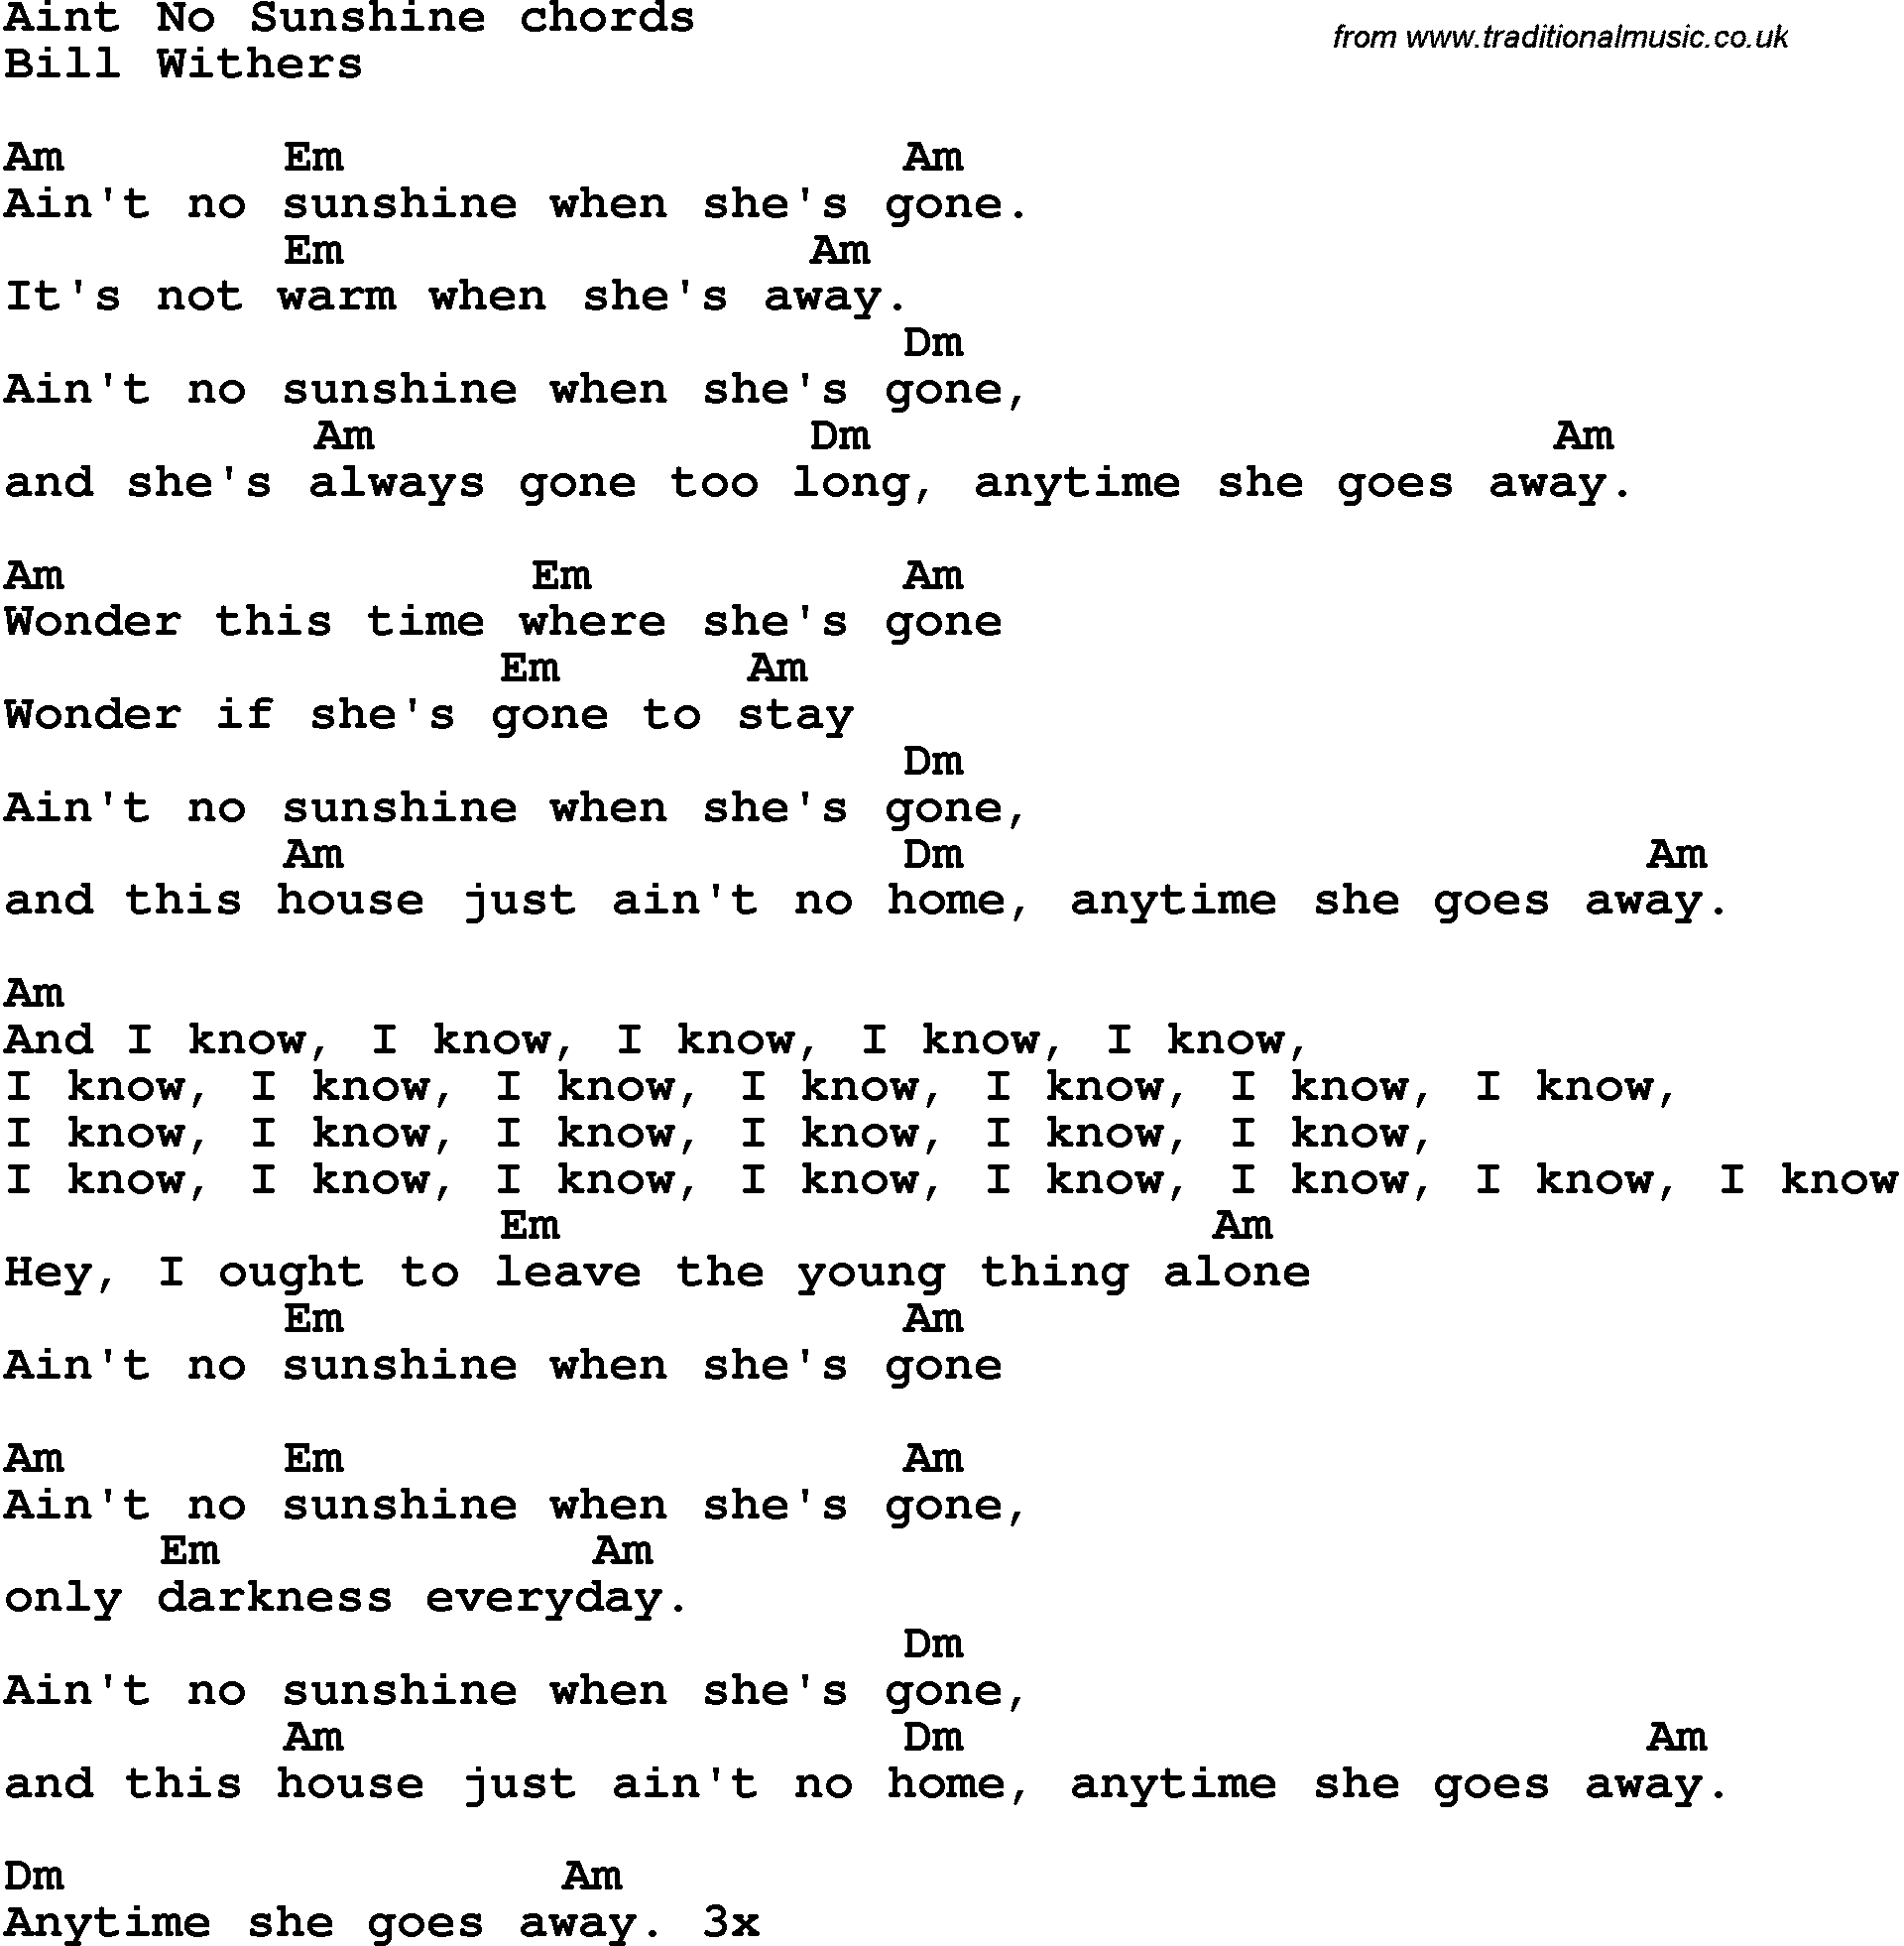 Song Lyrics With Guitar Chords For Ain T No Sunshine Guitar Chords For Songs Guitar Lessons Songs Guitar Chords And Lyrics Am em amwonder this time where she's gone. pinterest